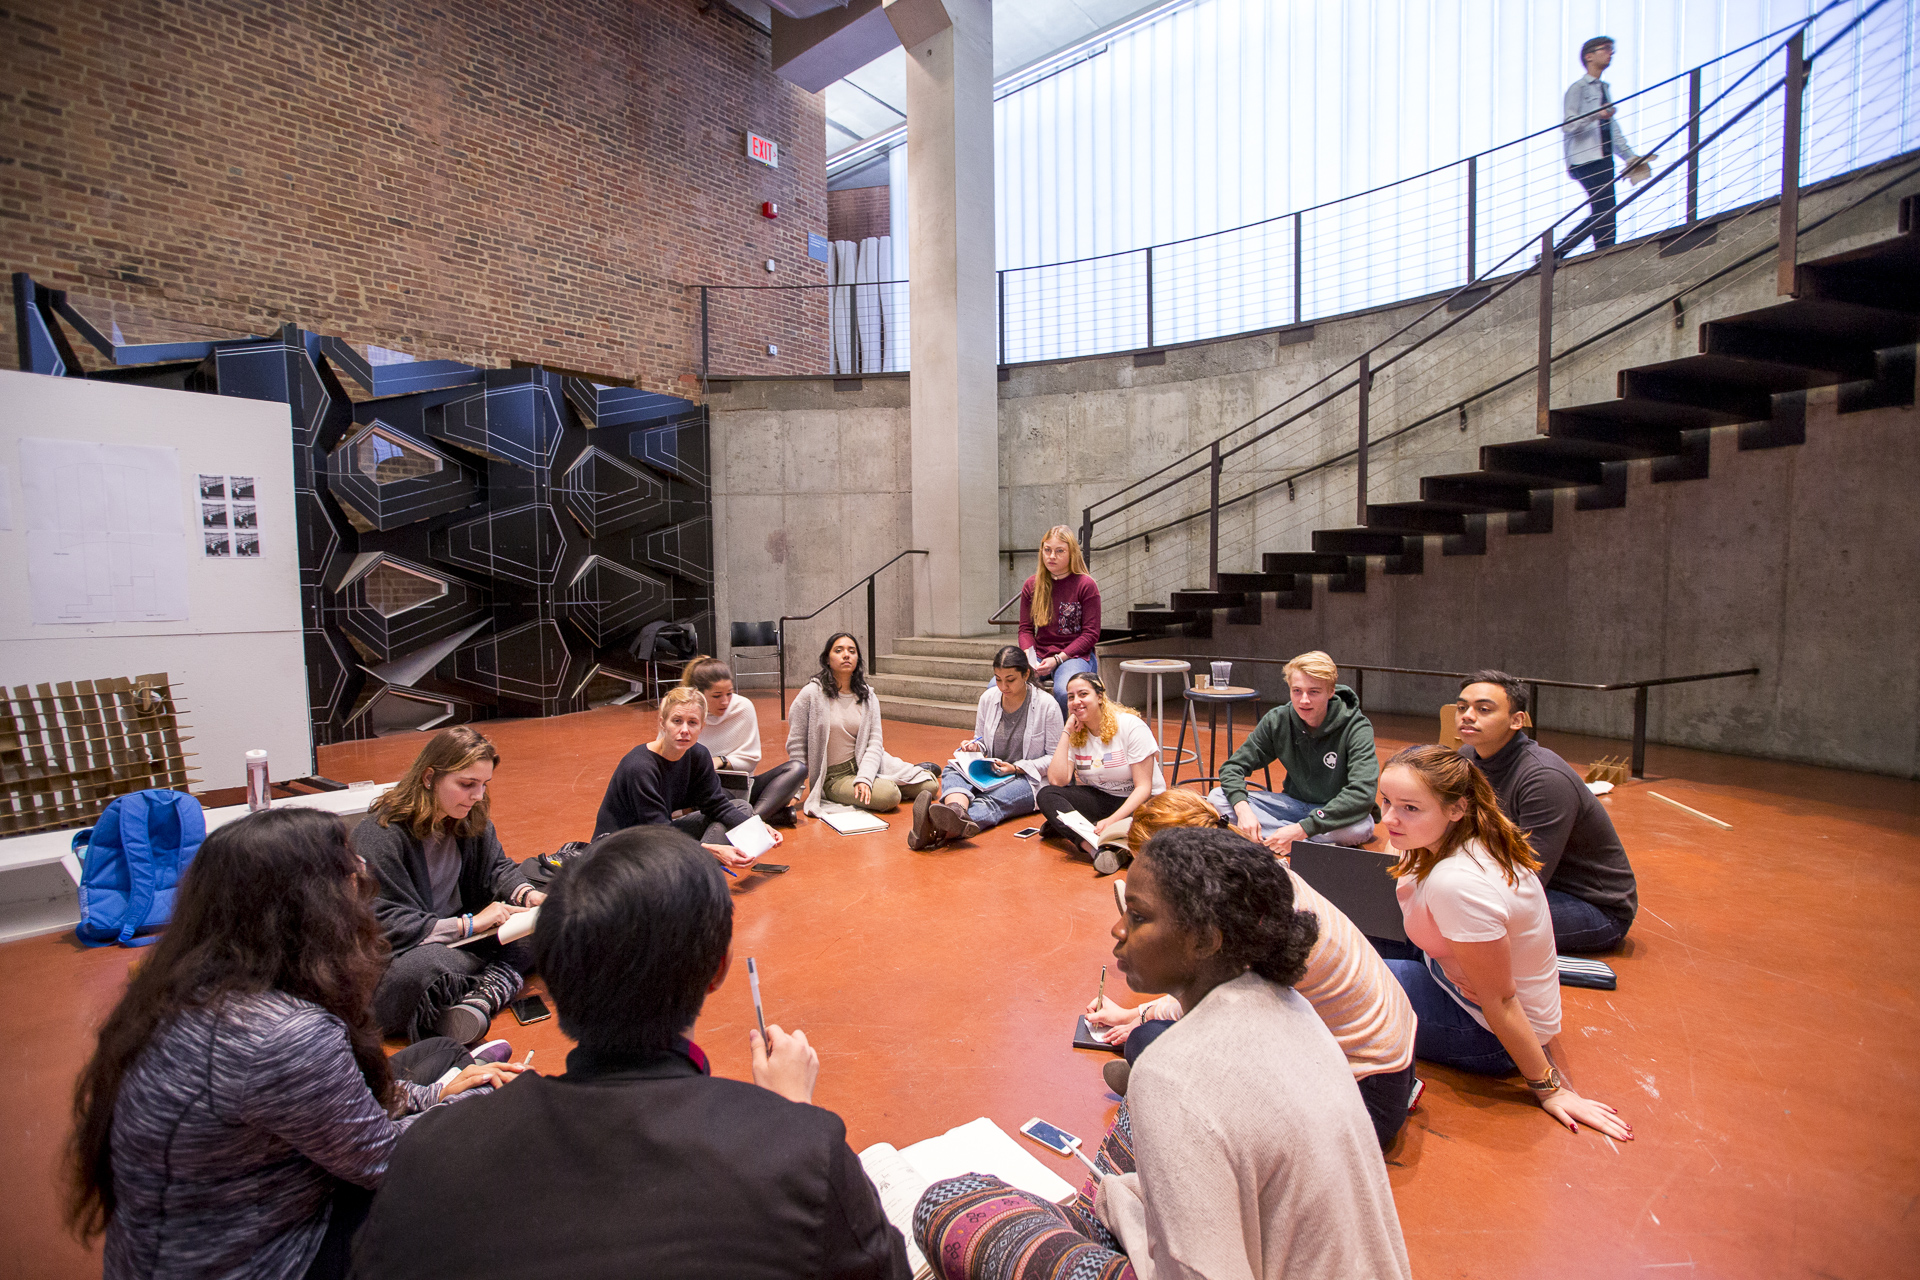 Group photograph of a professor and students sitting in a circle on the ground at Higgins Hall